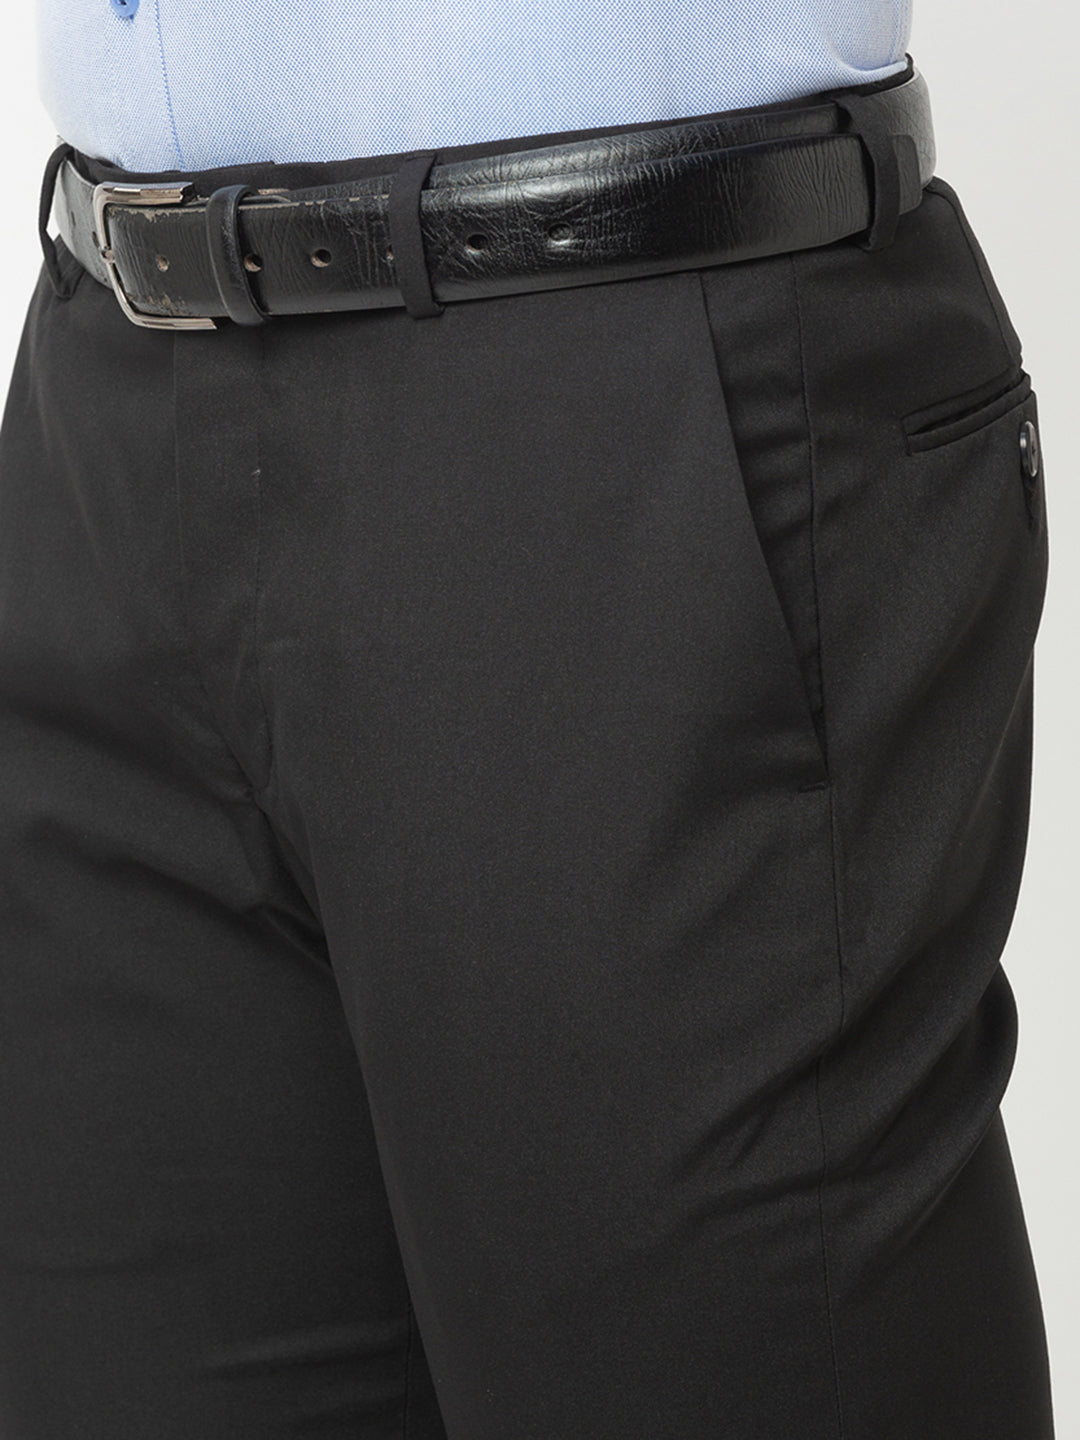 Globus Black Solid Trousers-4